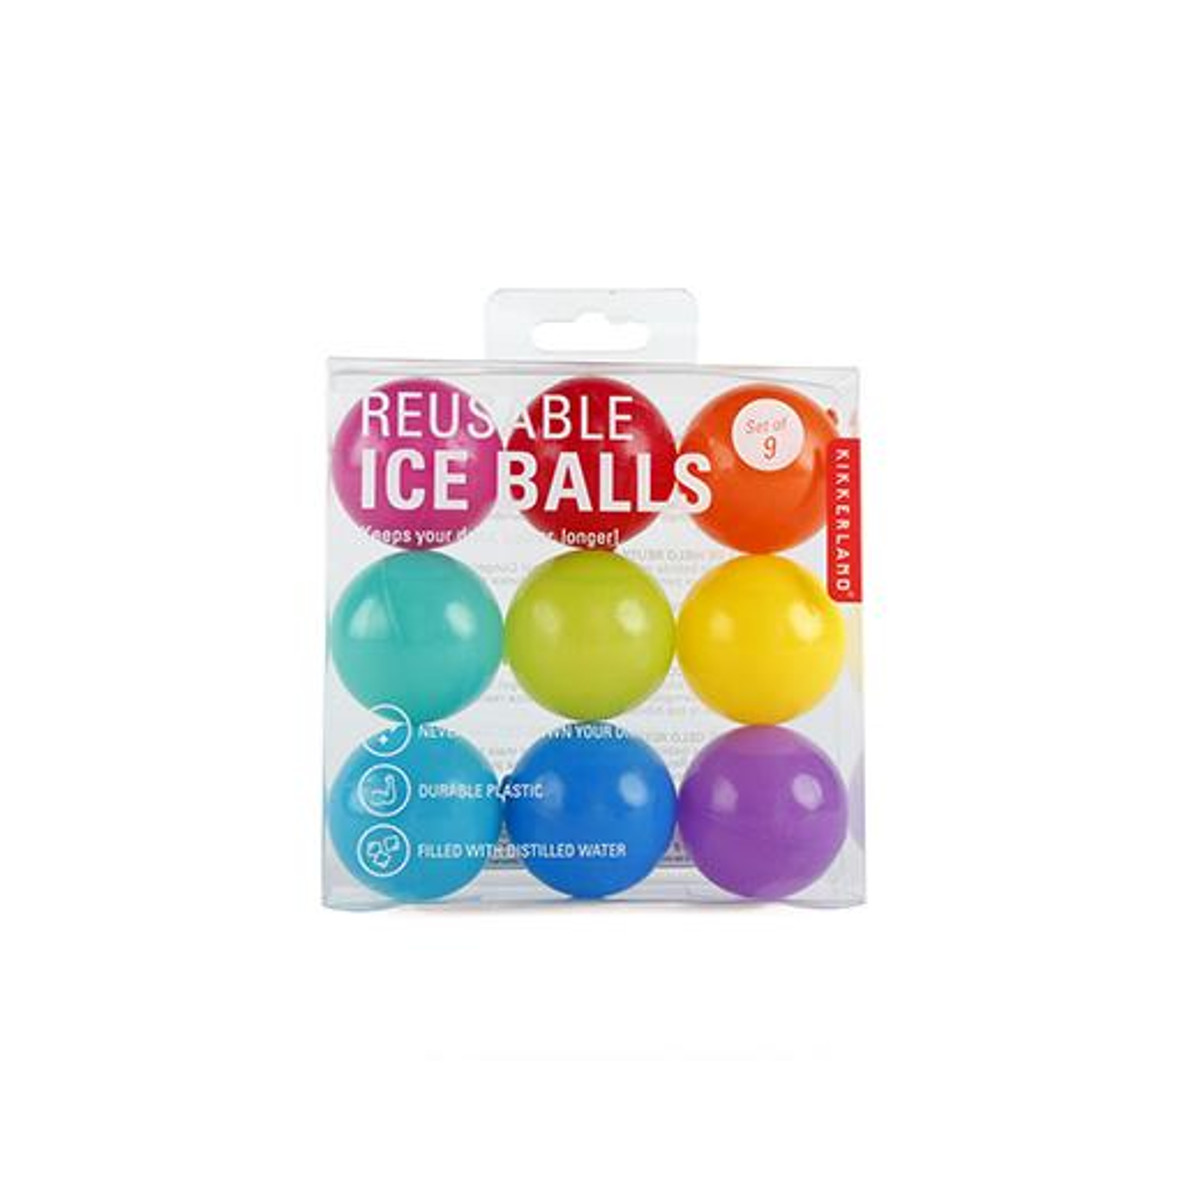 Reusable-Ice-Balls-For-Drinks-Main-Image